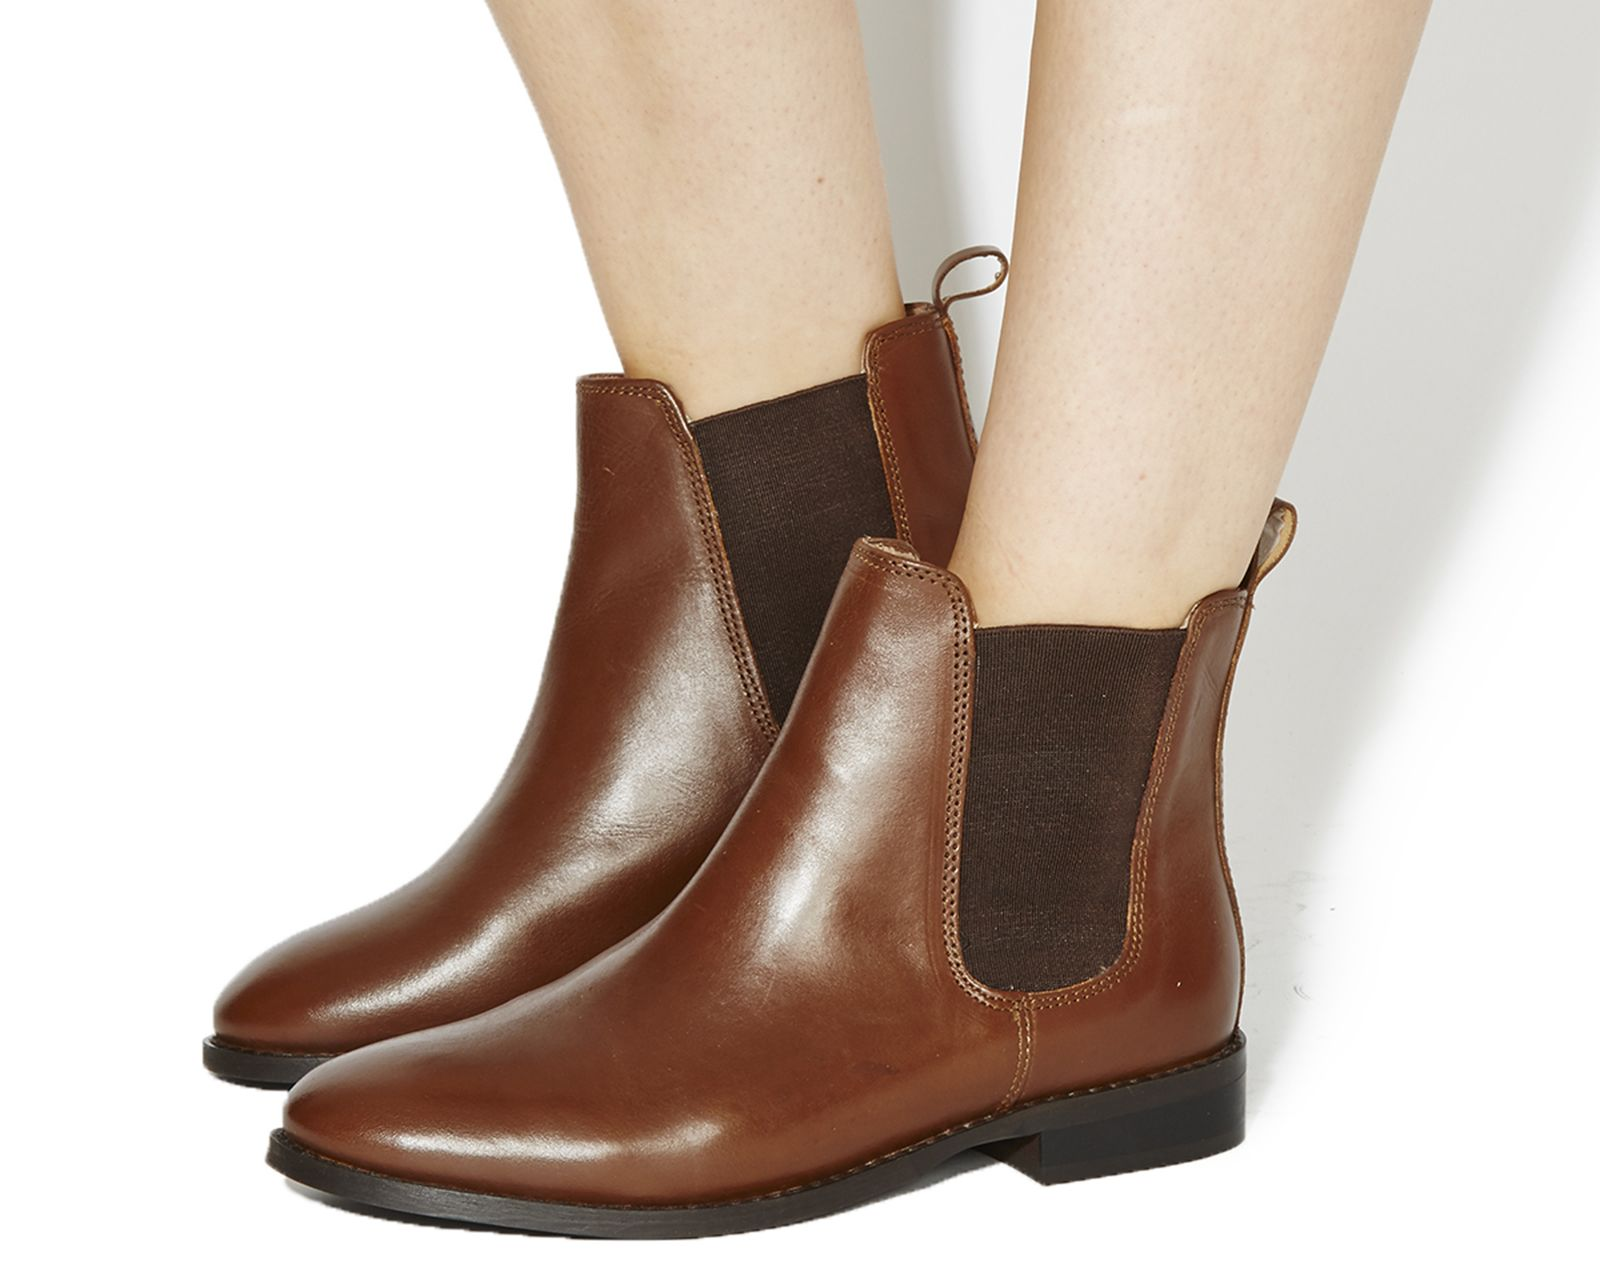 Office Bramble Chelsea Boots Brown Leather - Ankle Boots